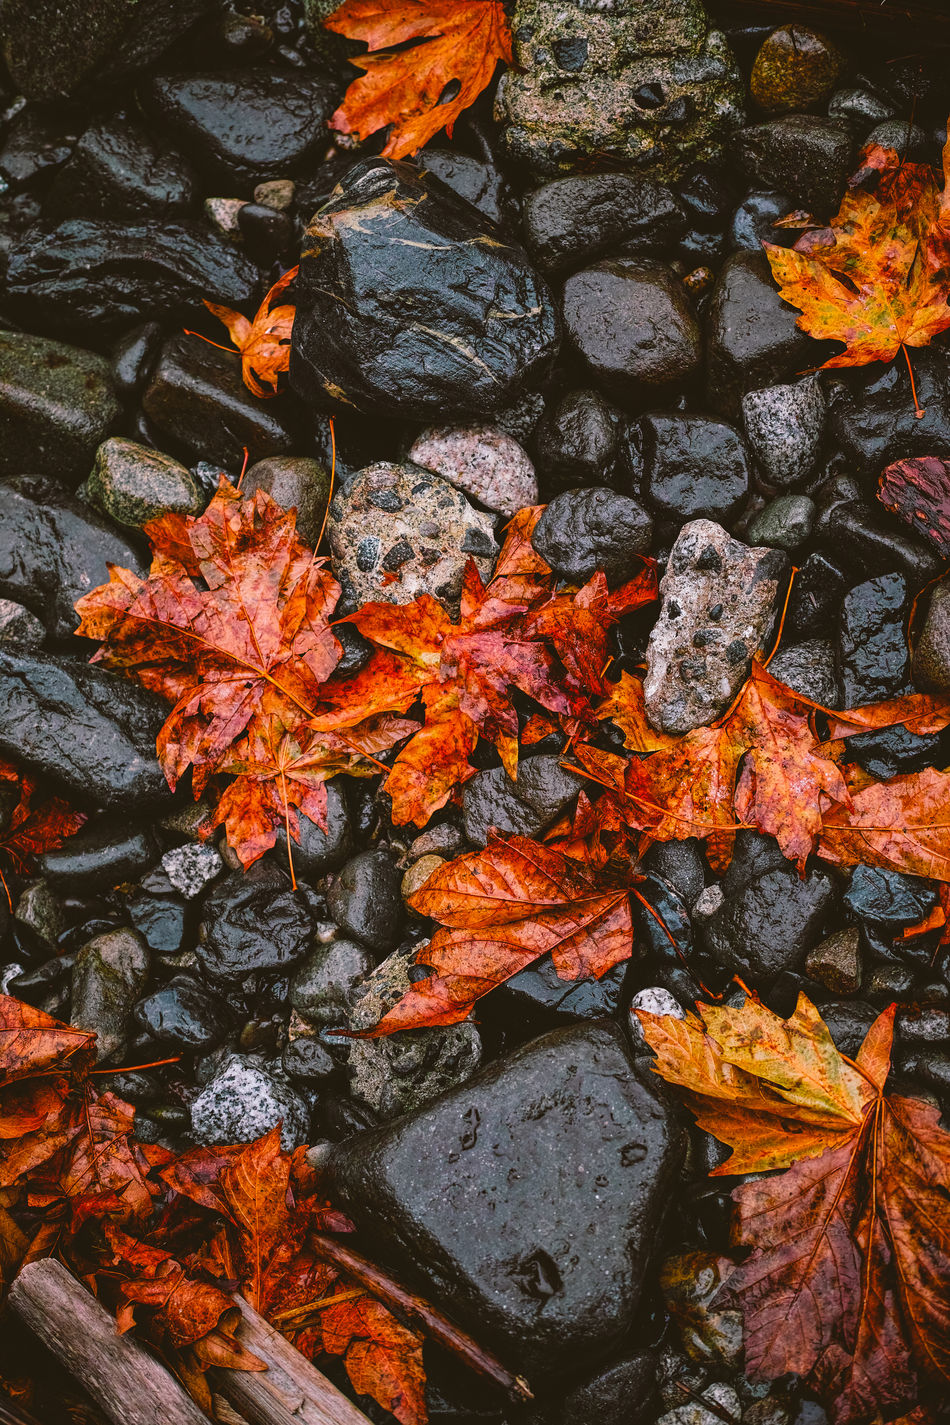 Stanley Park (Vancouver, Canada) Autumn Autumn Colors Dp23 Leaves Nature Rocks Sigma Stanley Park Streetphotography